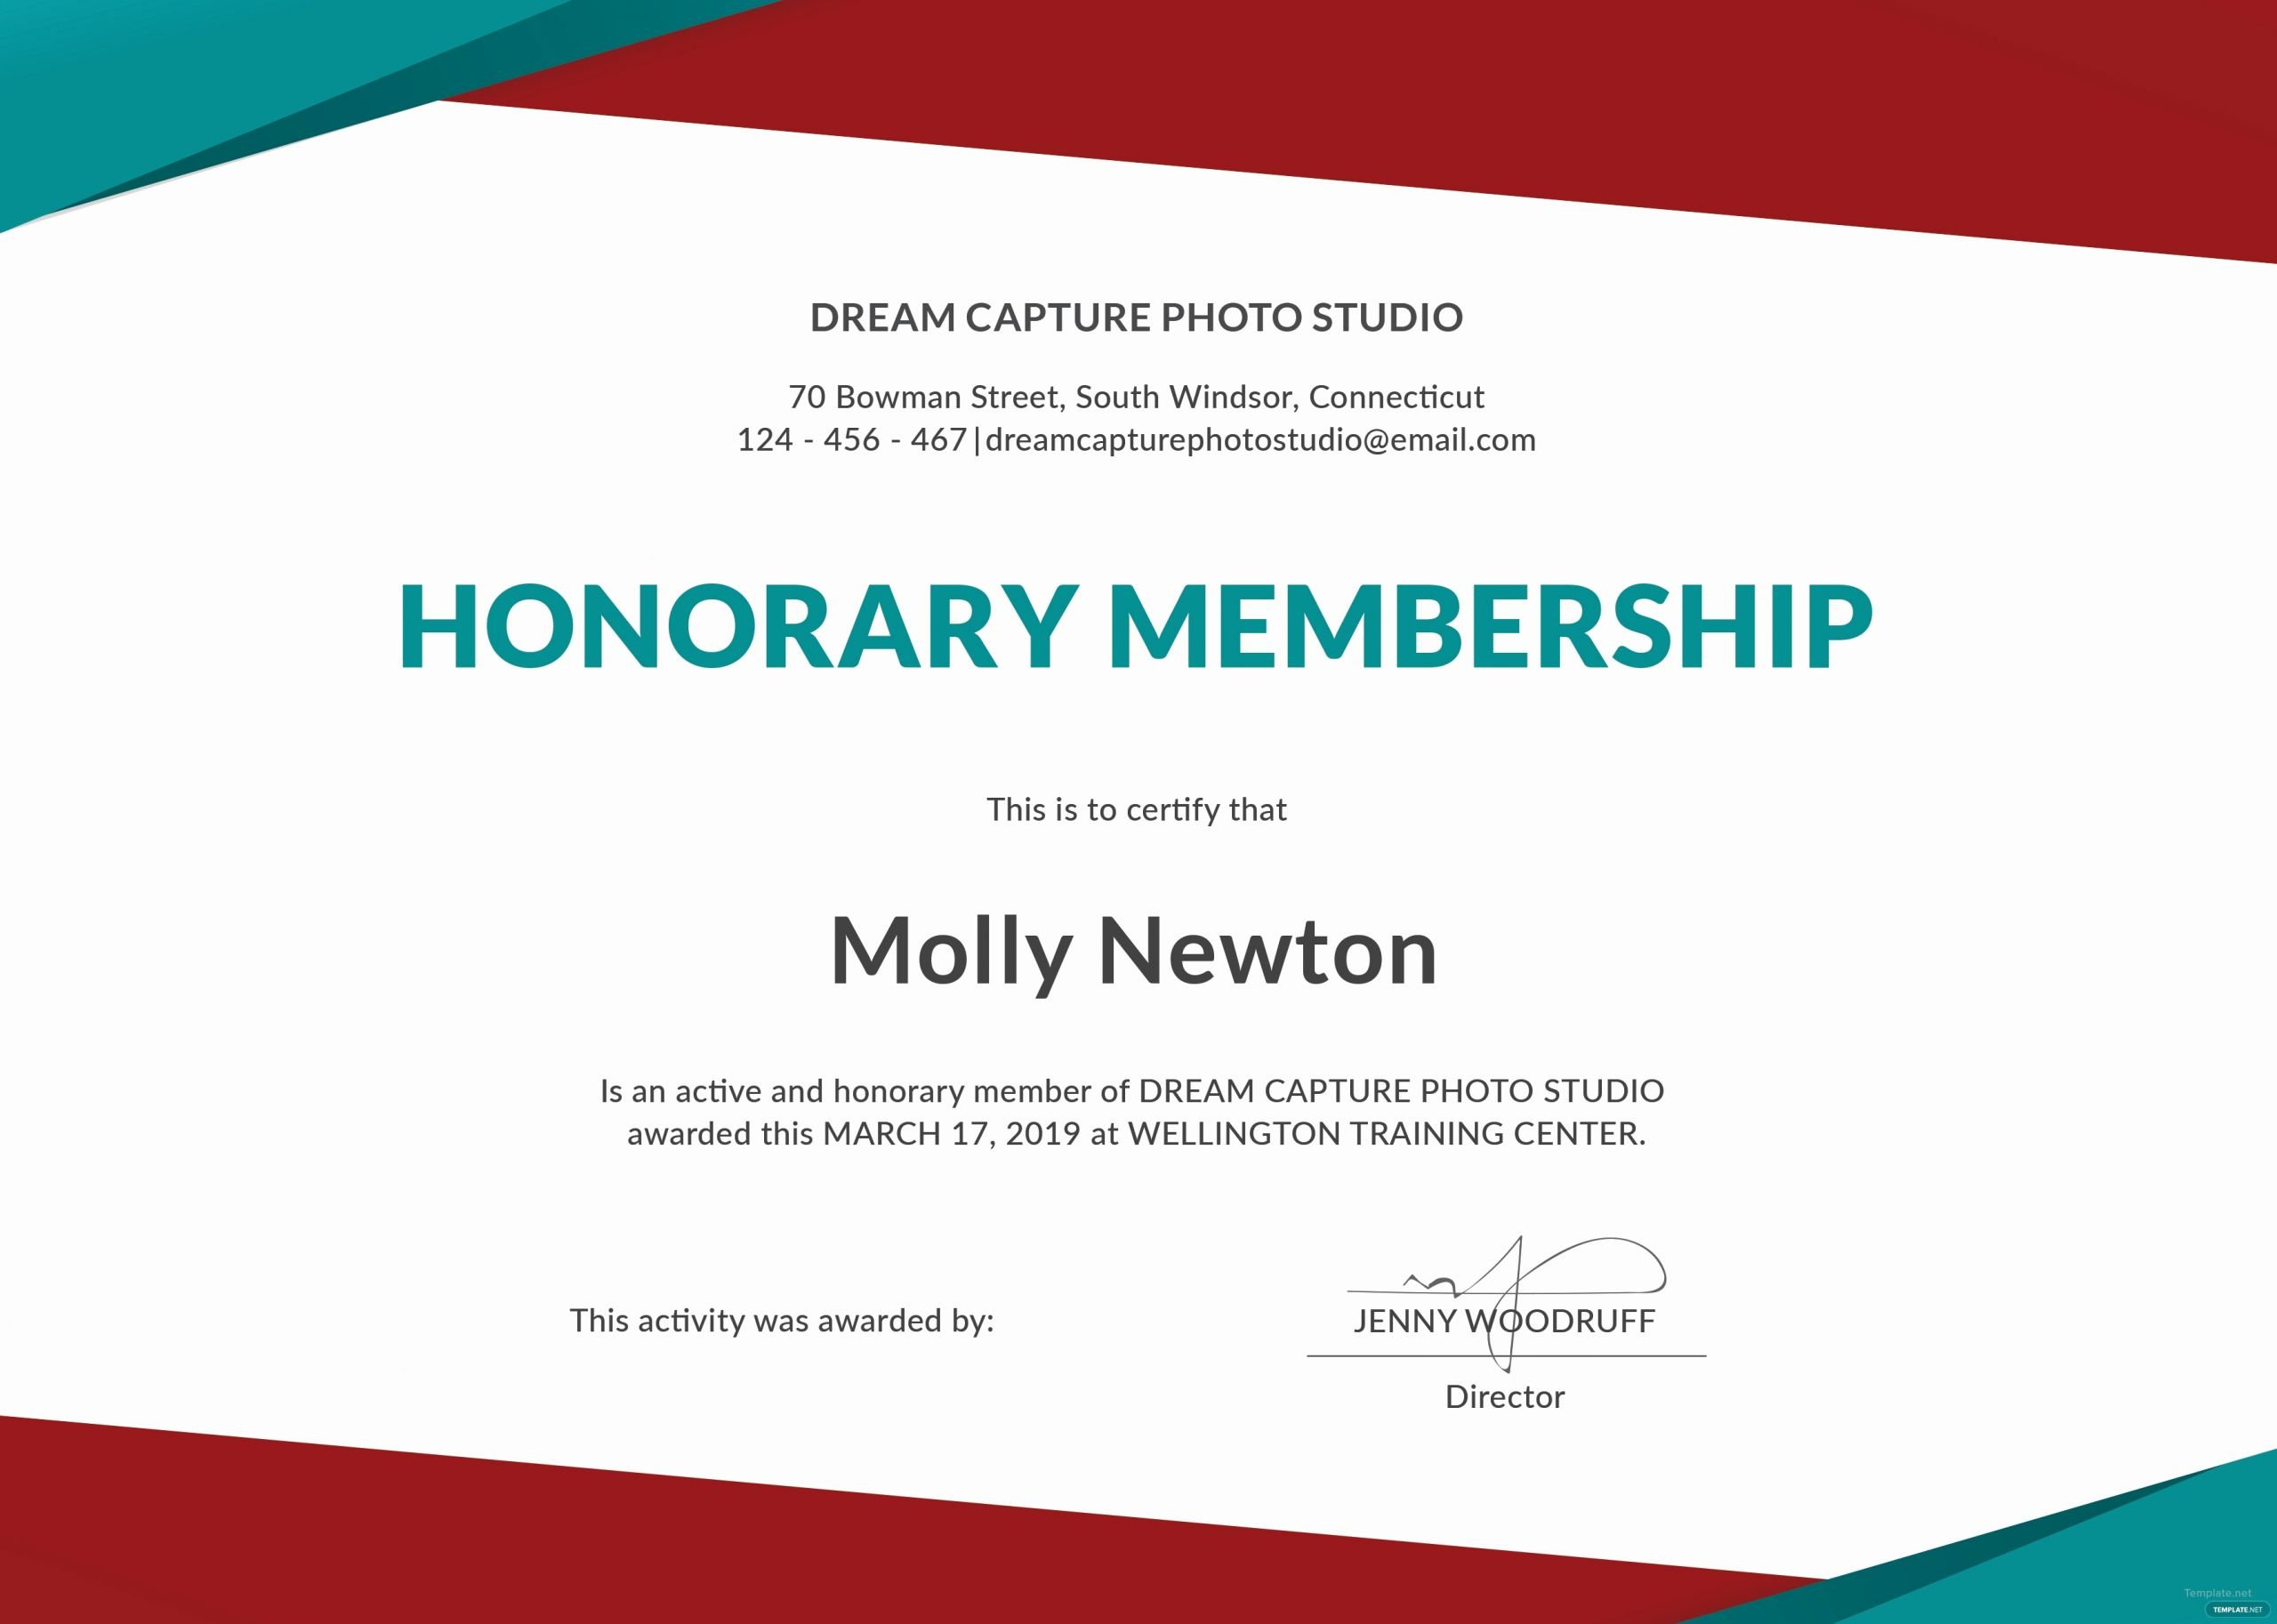 Honorary Life Membership Certificate Template Beautiful Honorary Membership Certificate Sample